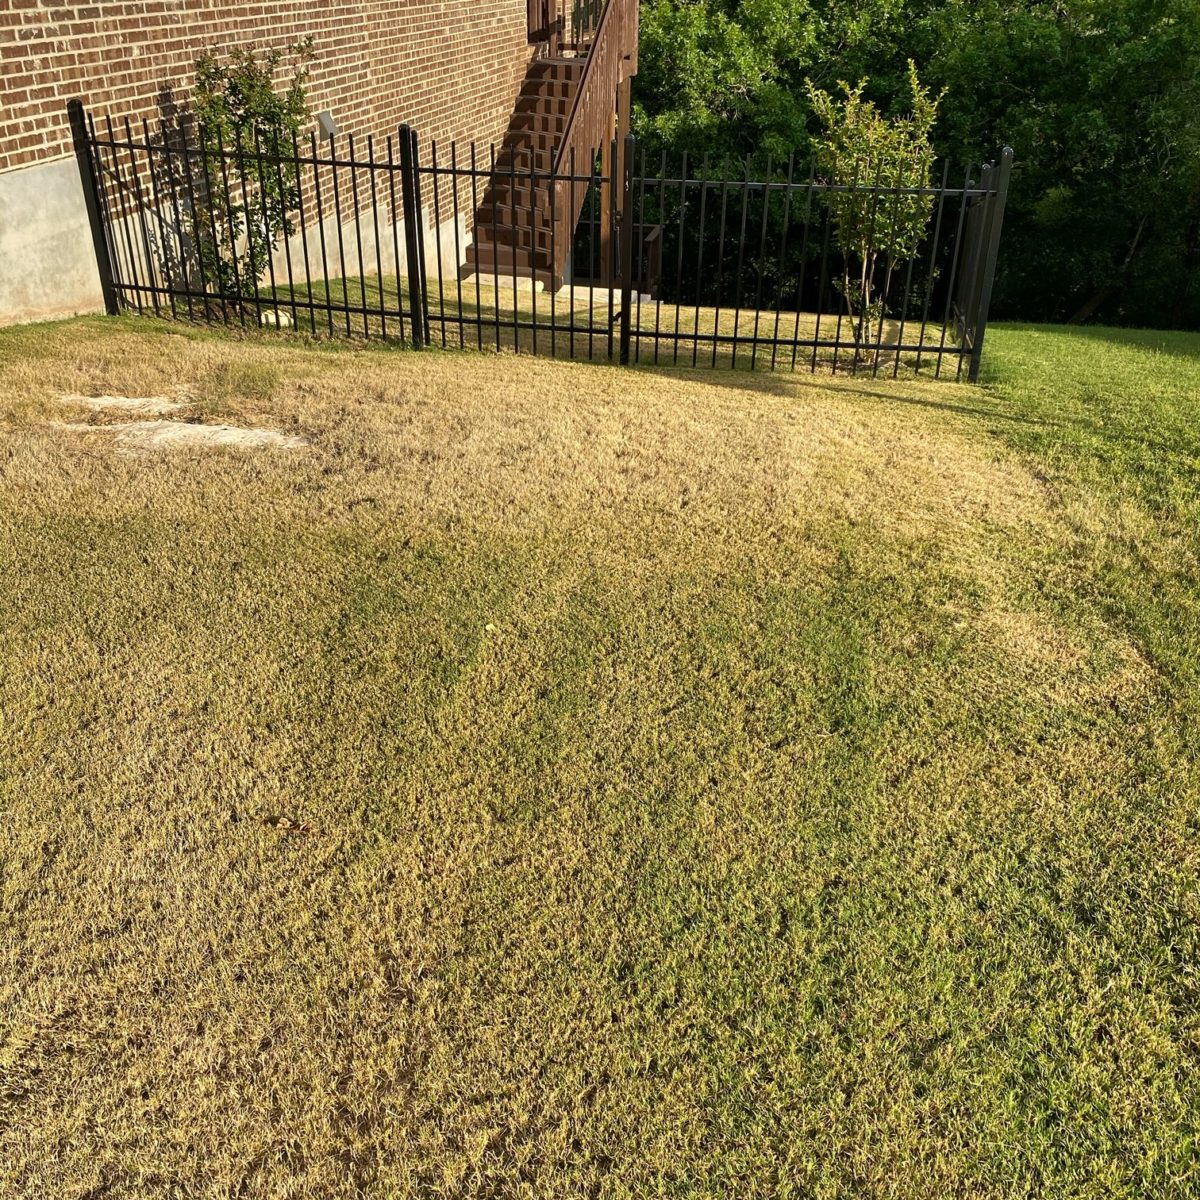 A brown patch of bermudagrass lawn